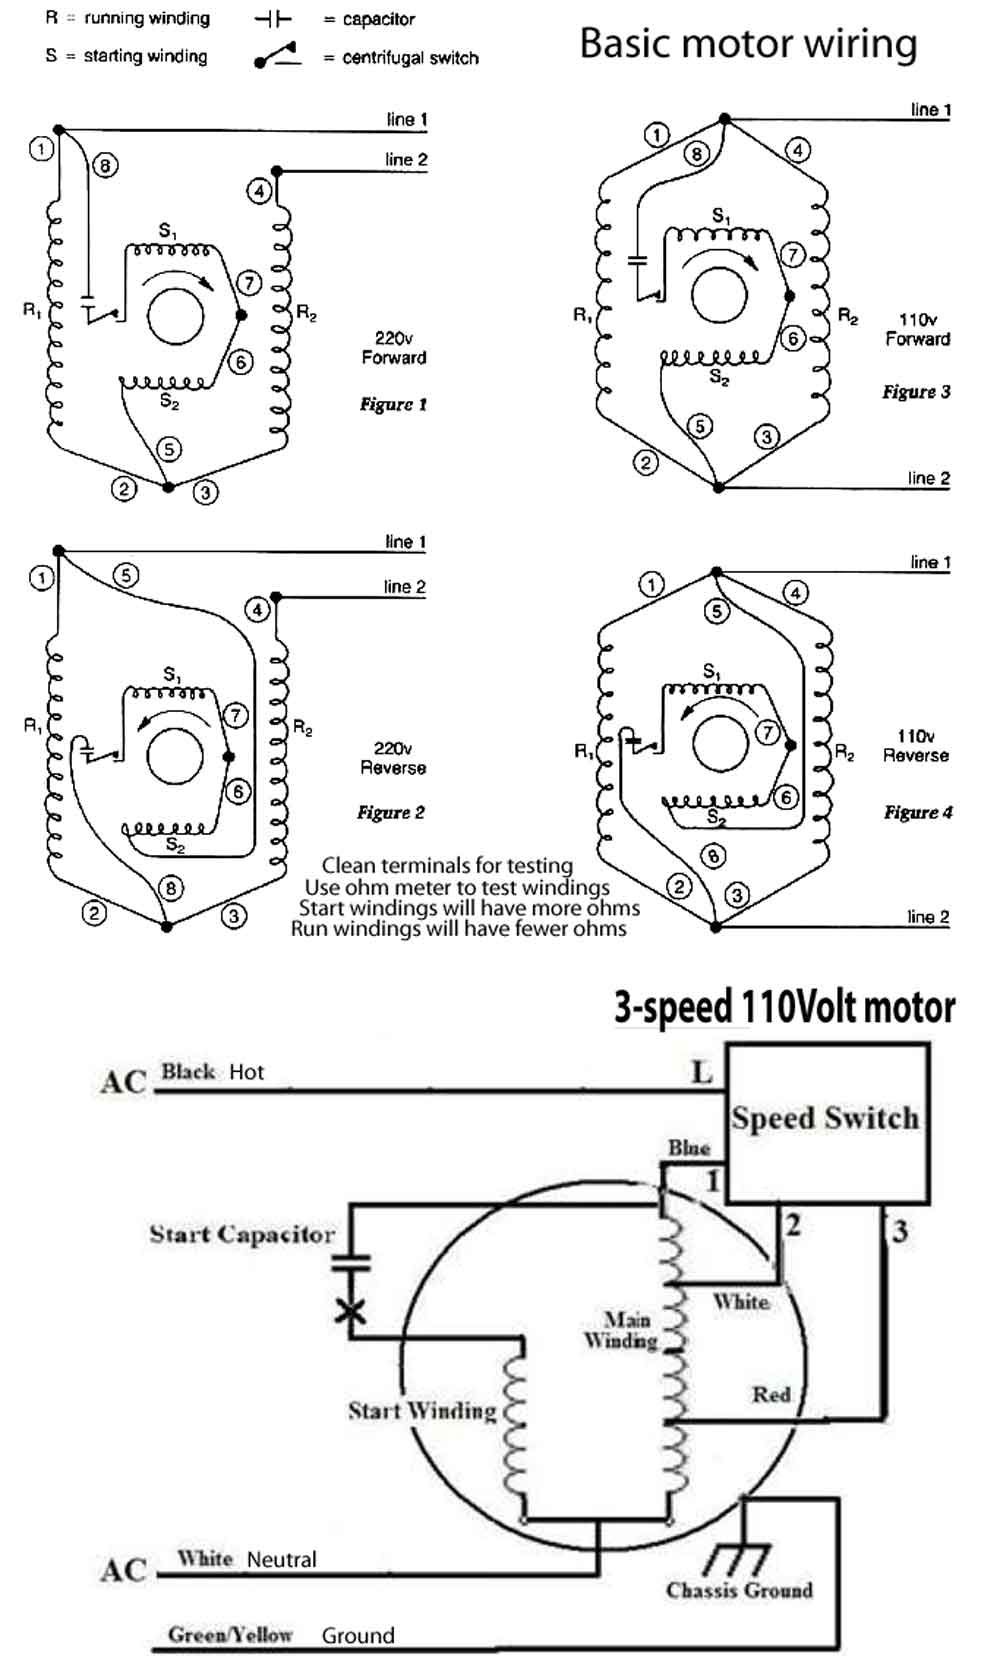 Wiring Diagram For 3 Speed Ceiling Fan